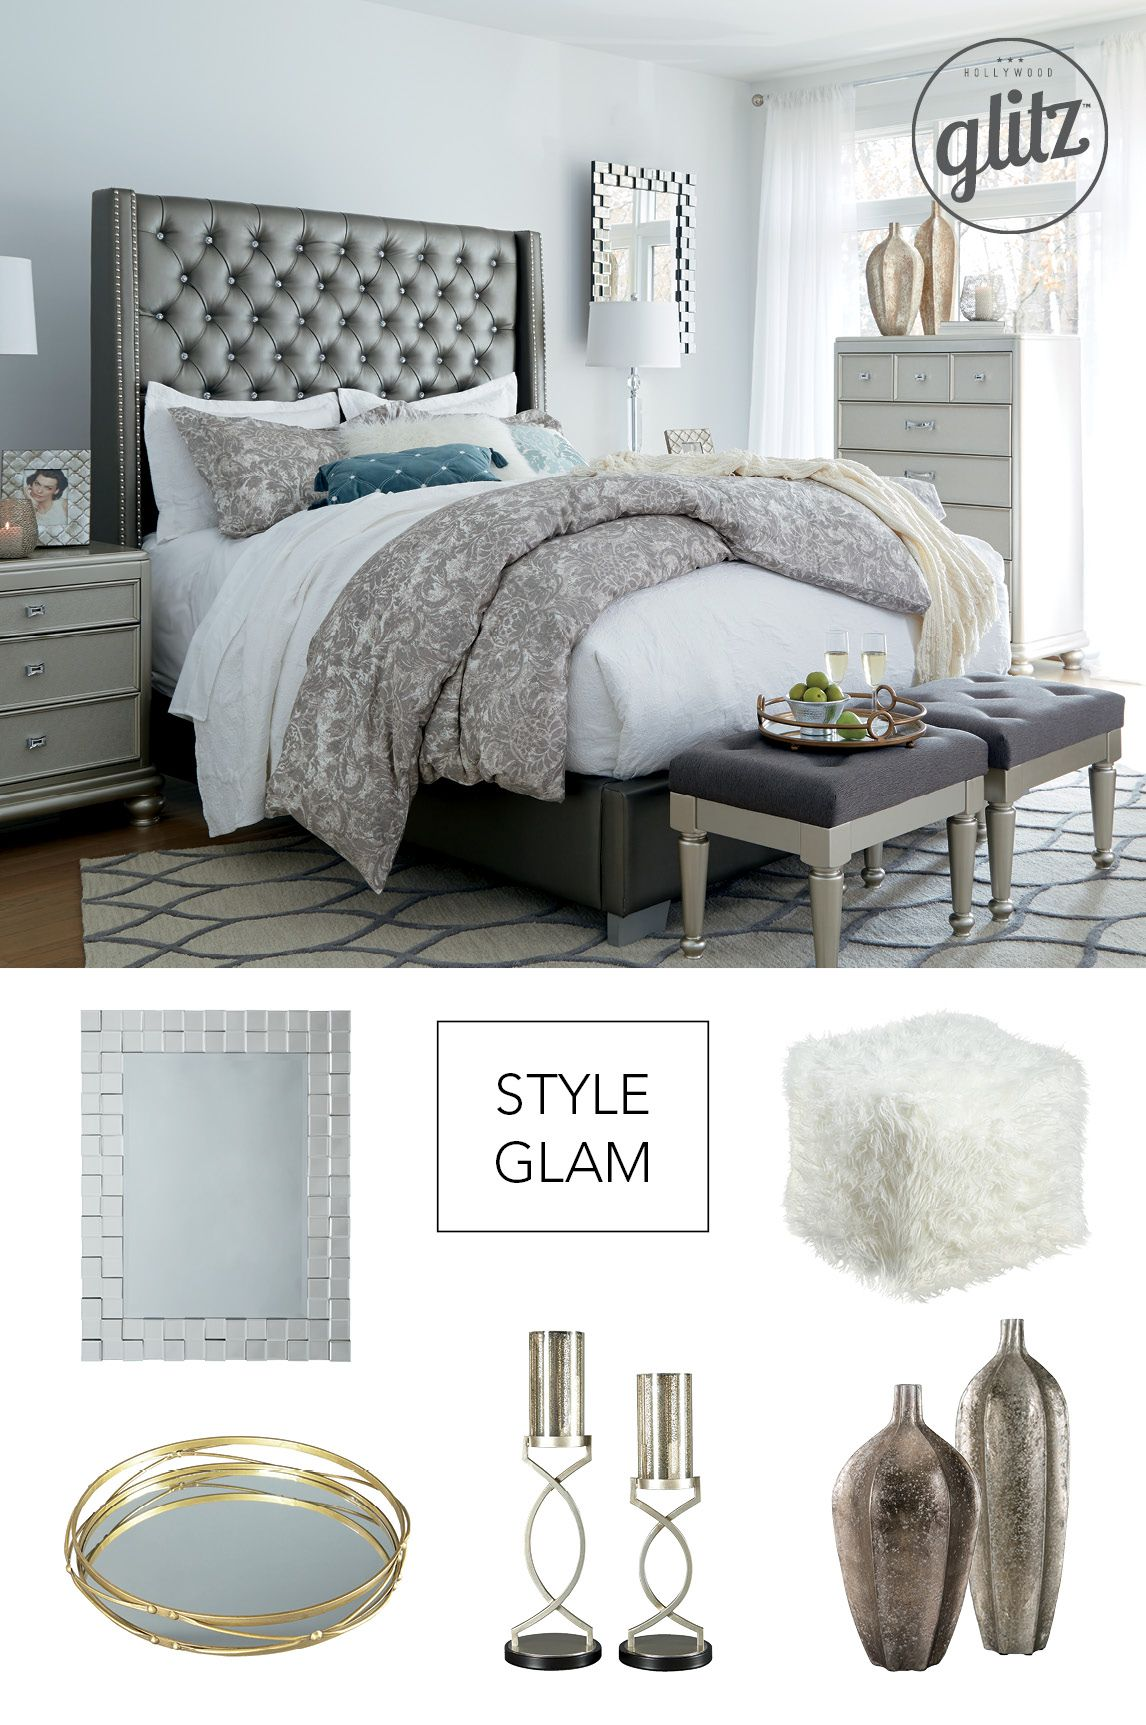 Hollywood glam style for the bedroom! Think upholstered